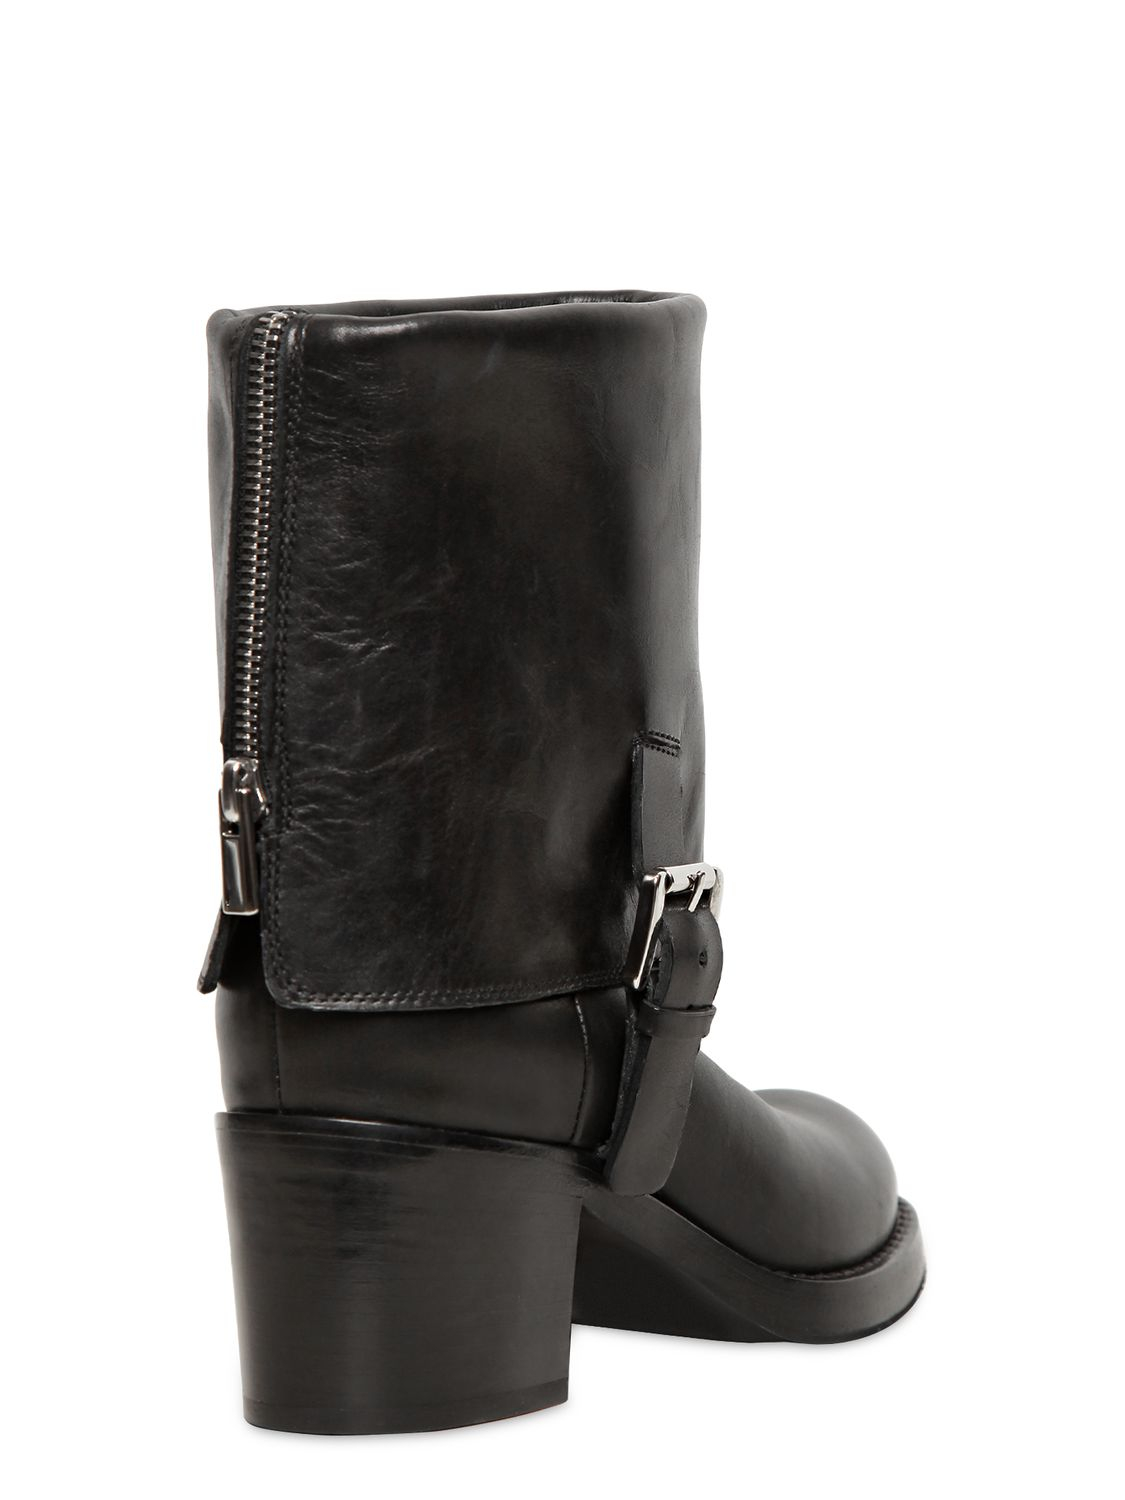 Costume national 85mm Calfskin Fold Over Ankle Boots in Black | Lyst